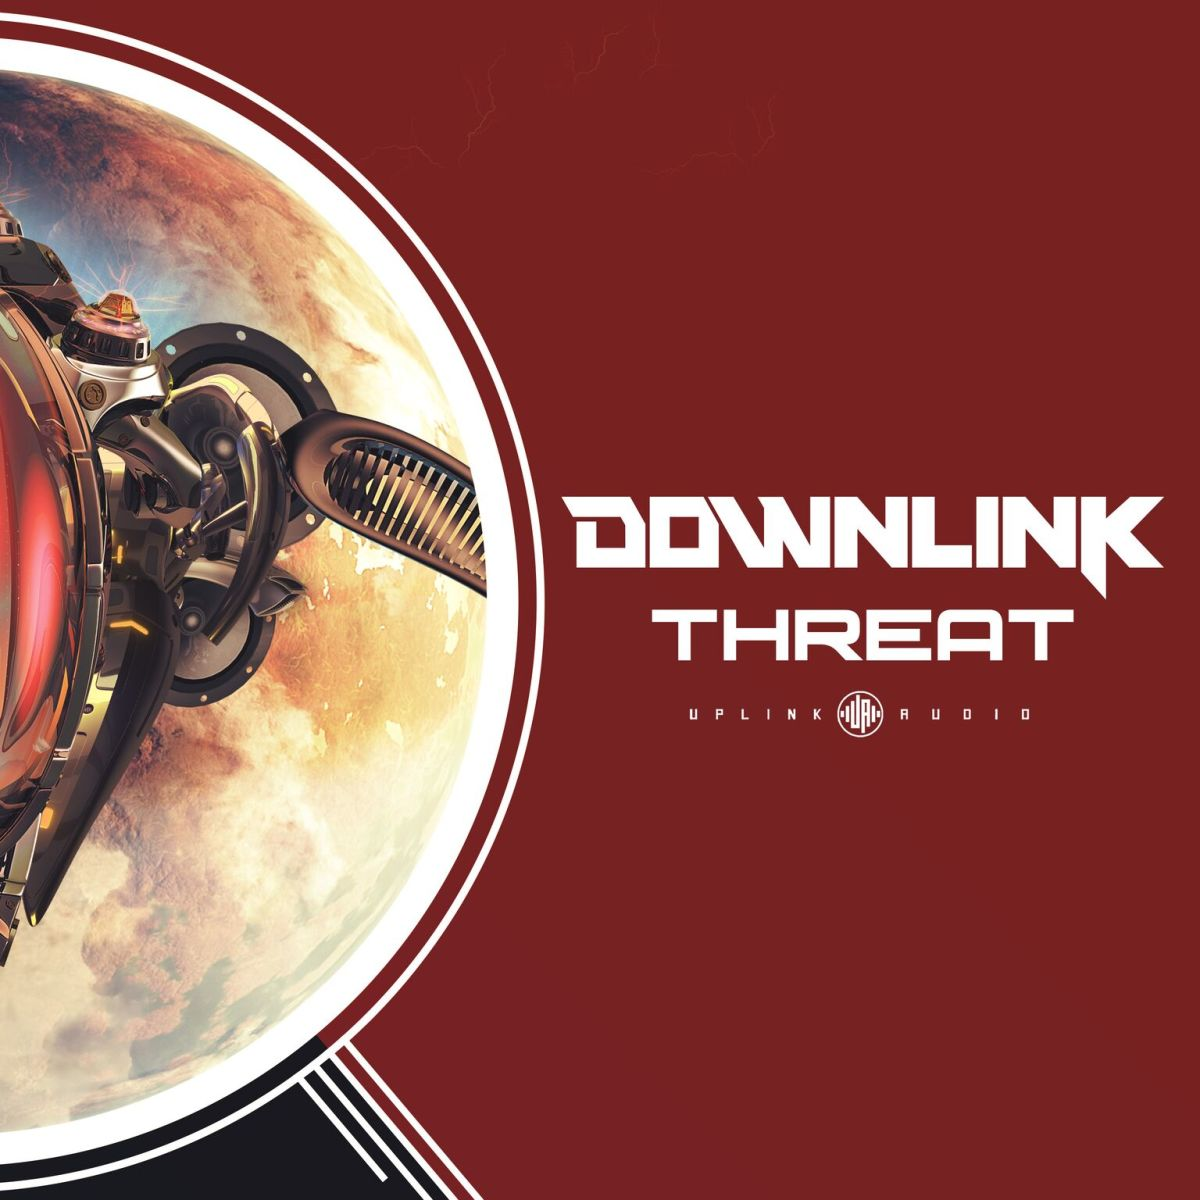 Downlink Threat EP